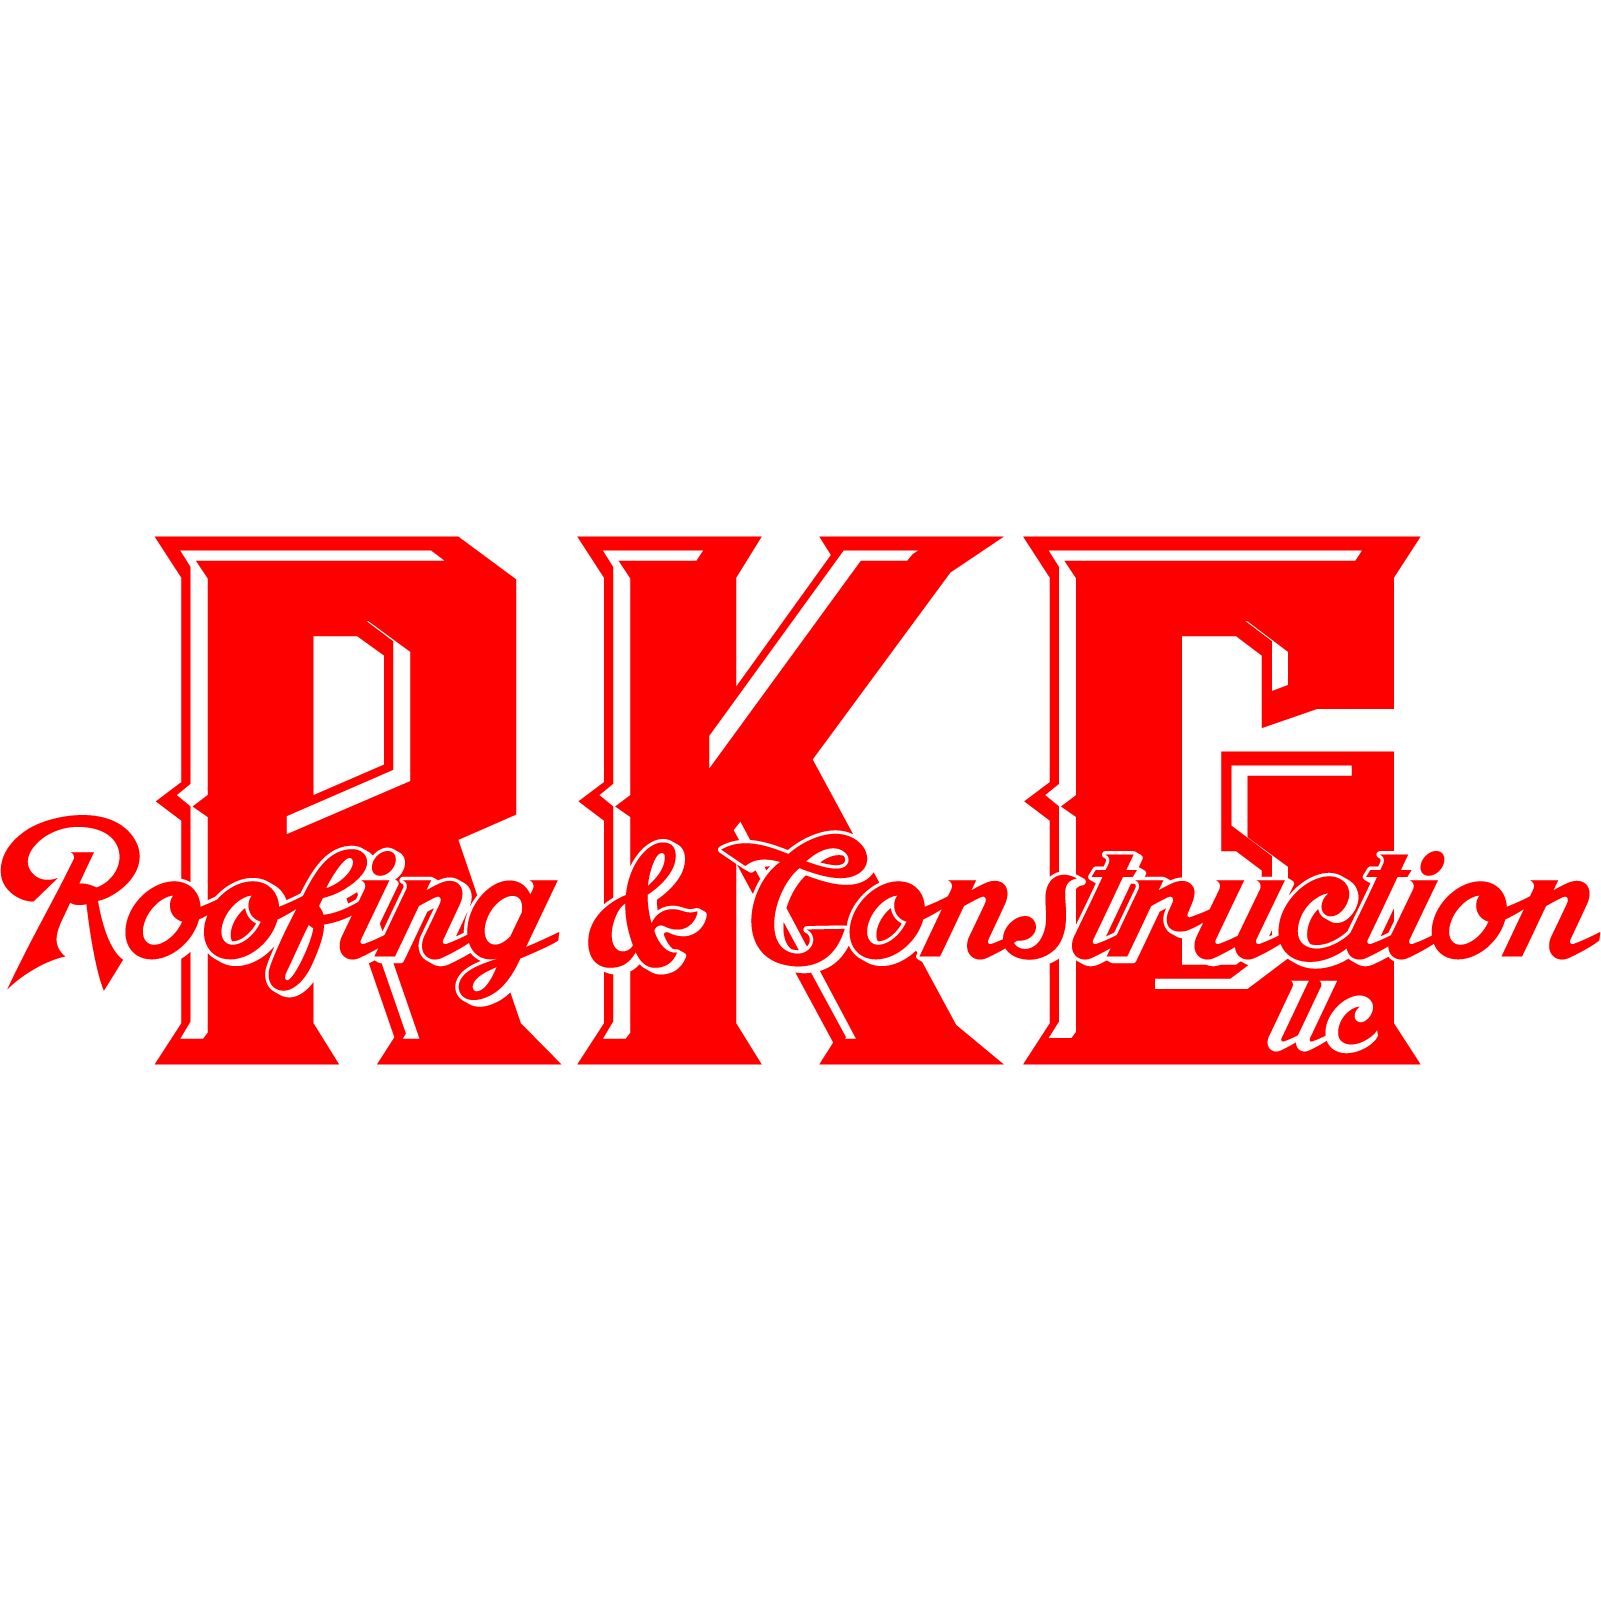 RKG Roofing & Construction